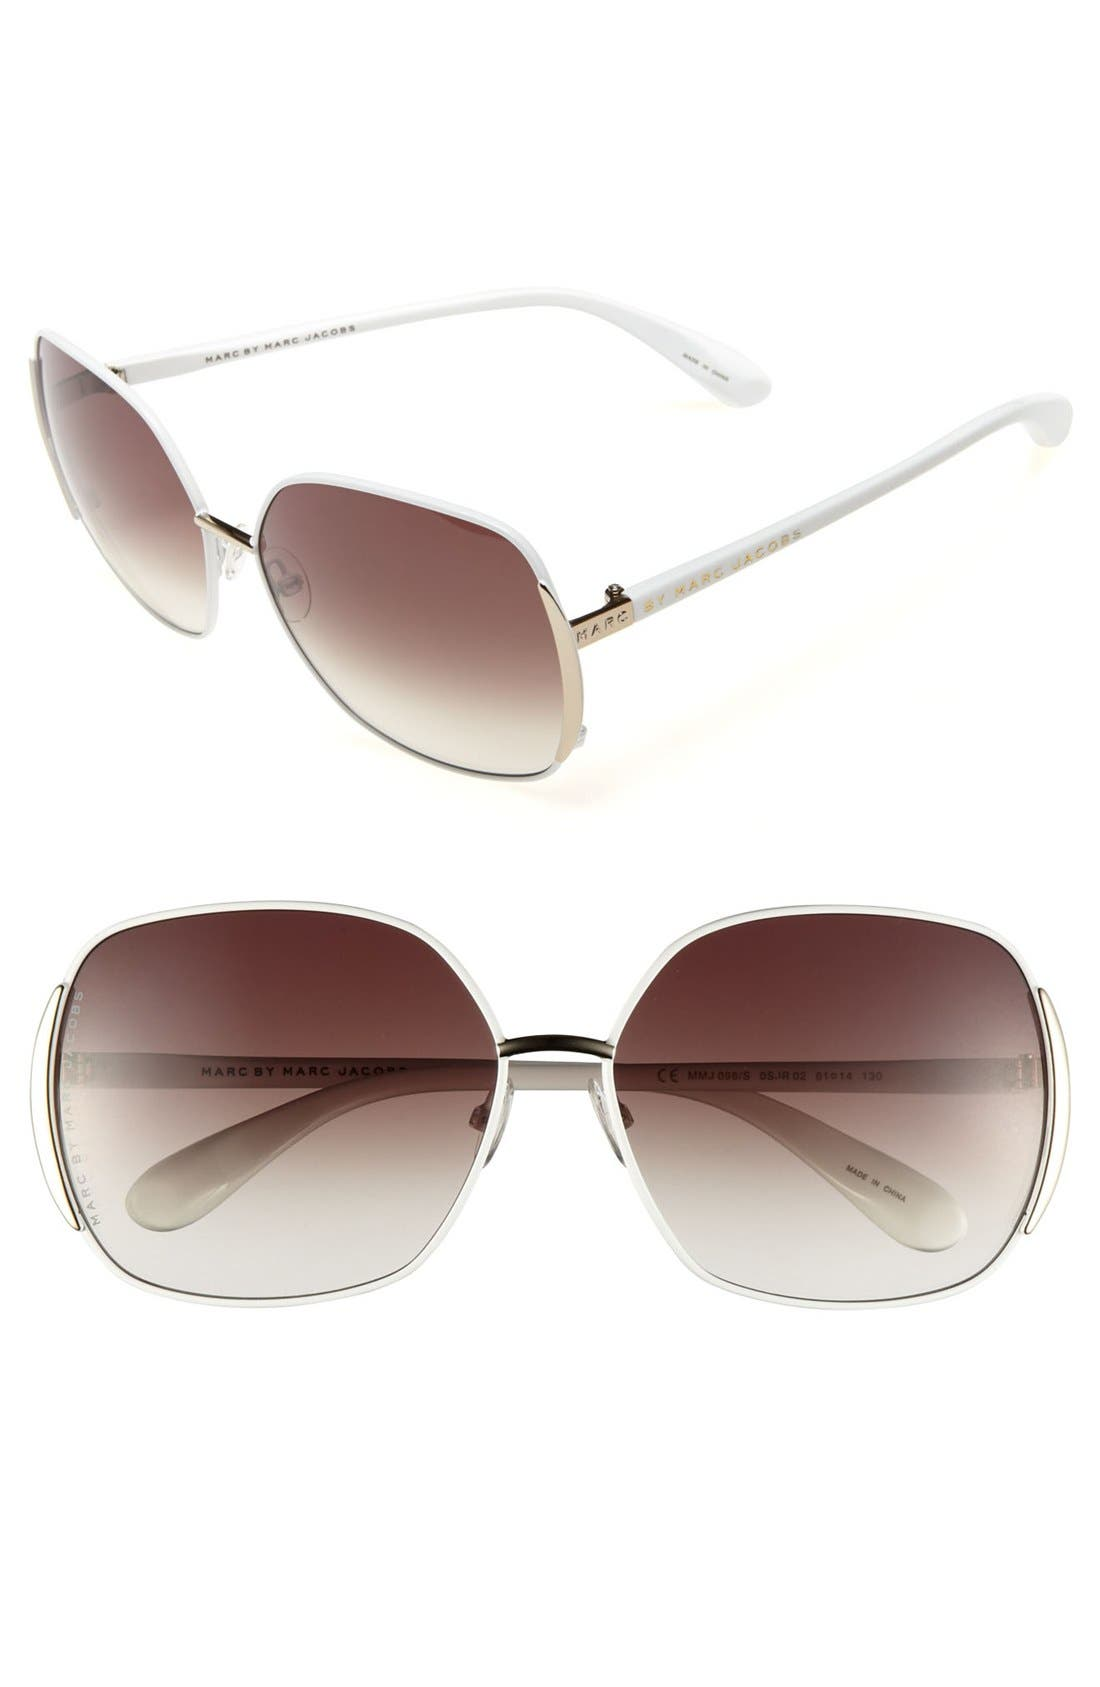 Alternate Image 1 Selected - MARC BY MARC JACOBS 61mm Vintage Inspired Oversized Sunglasses